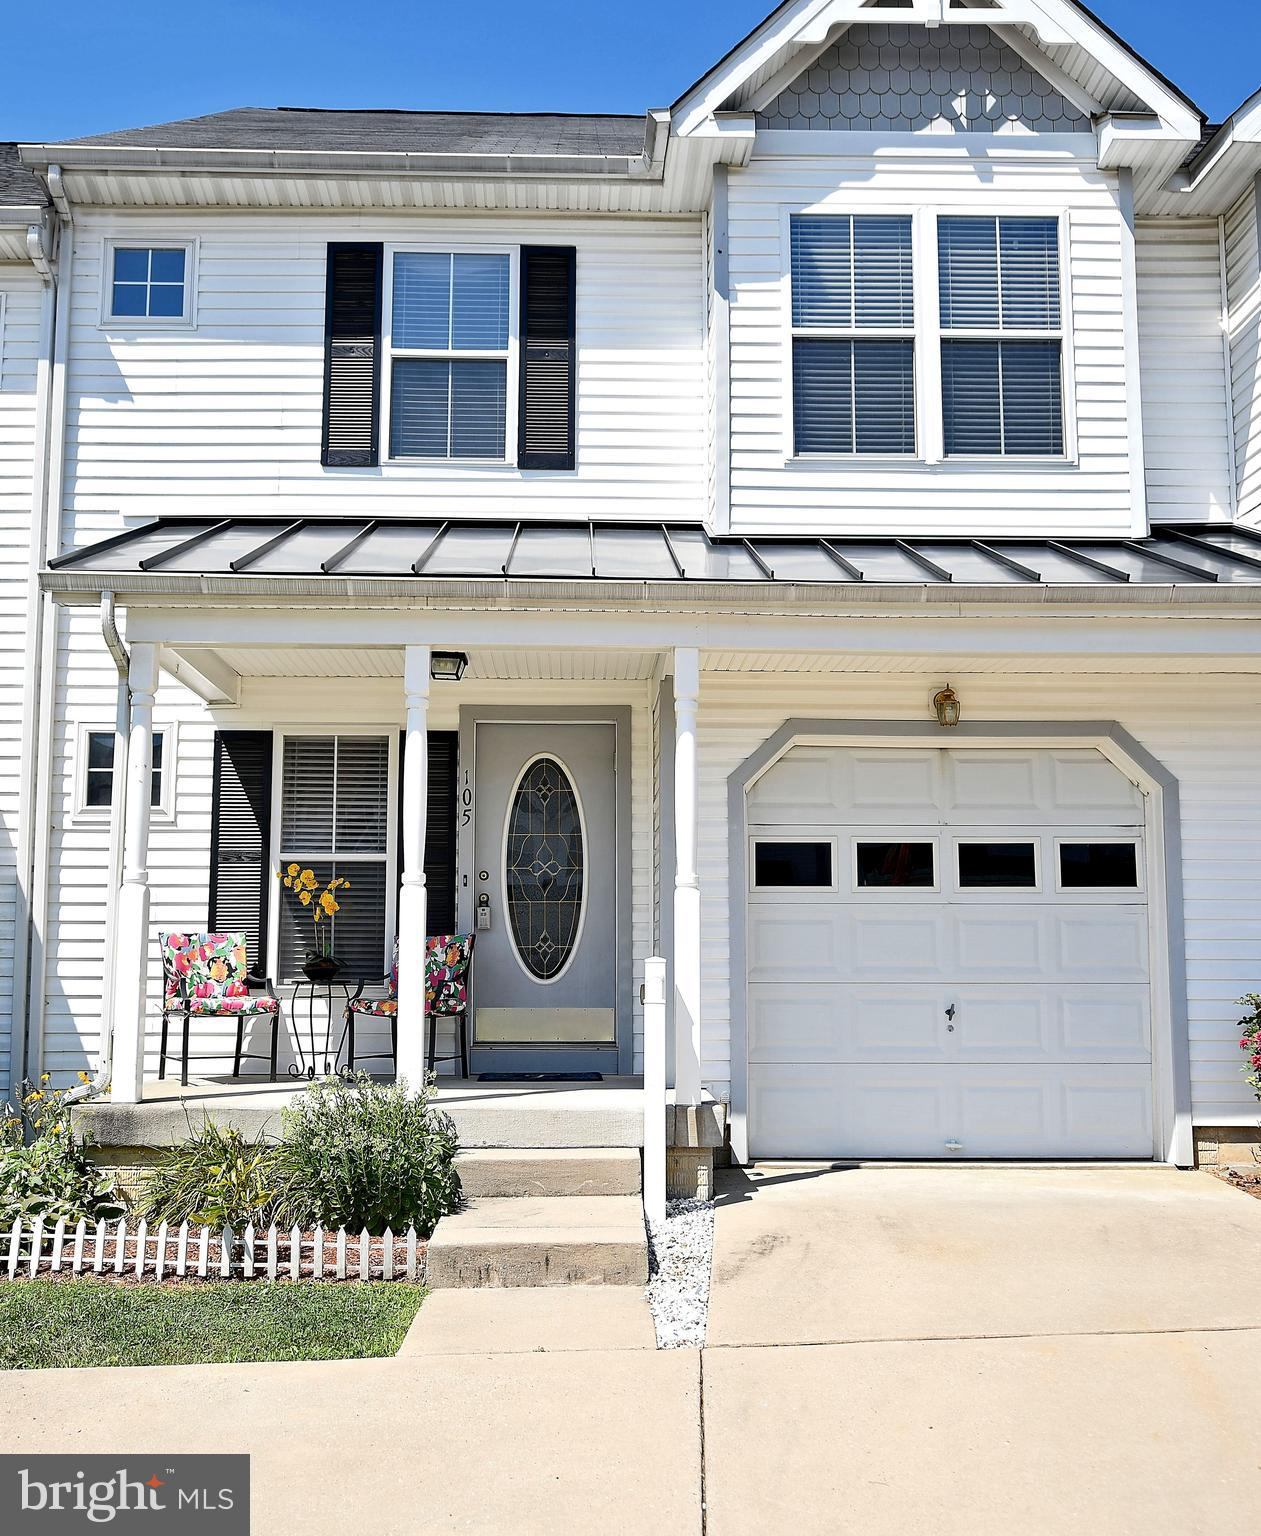 "Plenty of light streams through this lovely, luxury townhome located in the desirable Victorian Square community. Offering over 3000 sq. ft of living space with a three-story bump out, this spacious garage townhome provides three bedrooms and 3.5 bathrooms, gleaming hardwood floors on most of the main level with access in the foyer to the garage and opens to a beautiful kitchen with island, dining area and a sunlit family room.  Sliders from the family room open to a spacious deck overlooking the fenced in backyard setting.  The second level offers a master bedroom en-suite with a large sitting room and walk-in closet.  Two additional bedrooms, a hall bath and the laundry room complete this level. A fully finished lower level provides an incredible recreation room, an additional bonus room & a full bath.  This home has so much to offer, don't wait to call it ""HOME"" today!"